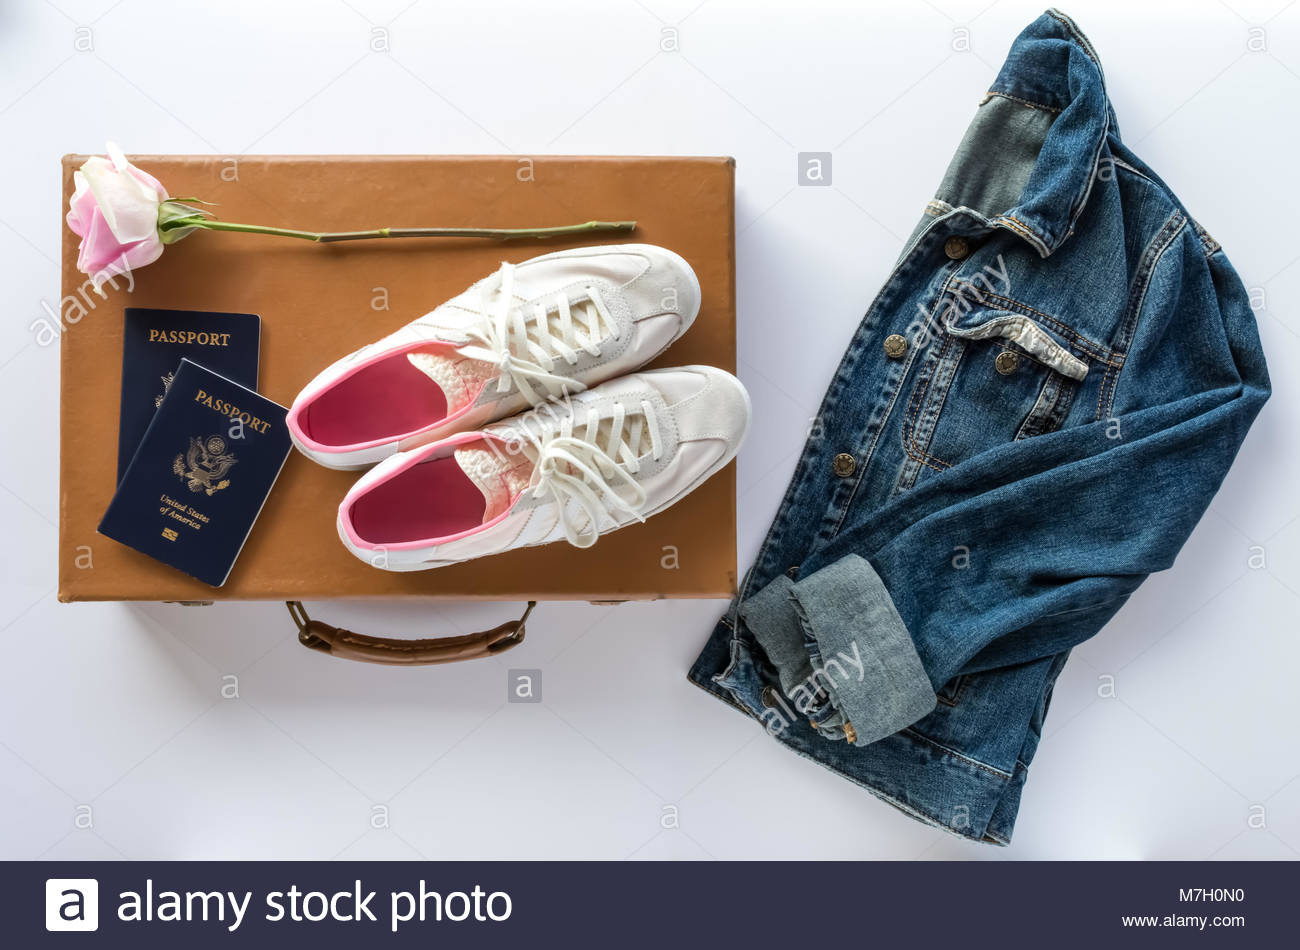 Passports, Vintage Suitcase, Pink Rose and Stylish Travel Accessories - Stock Image